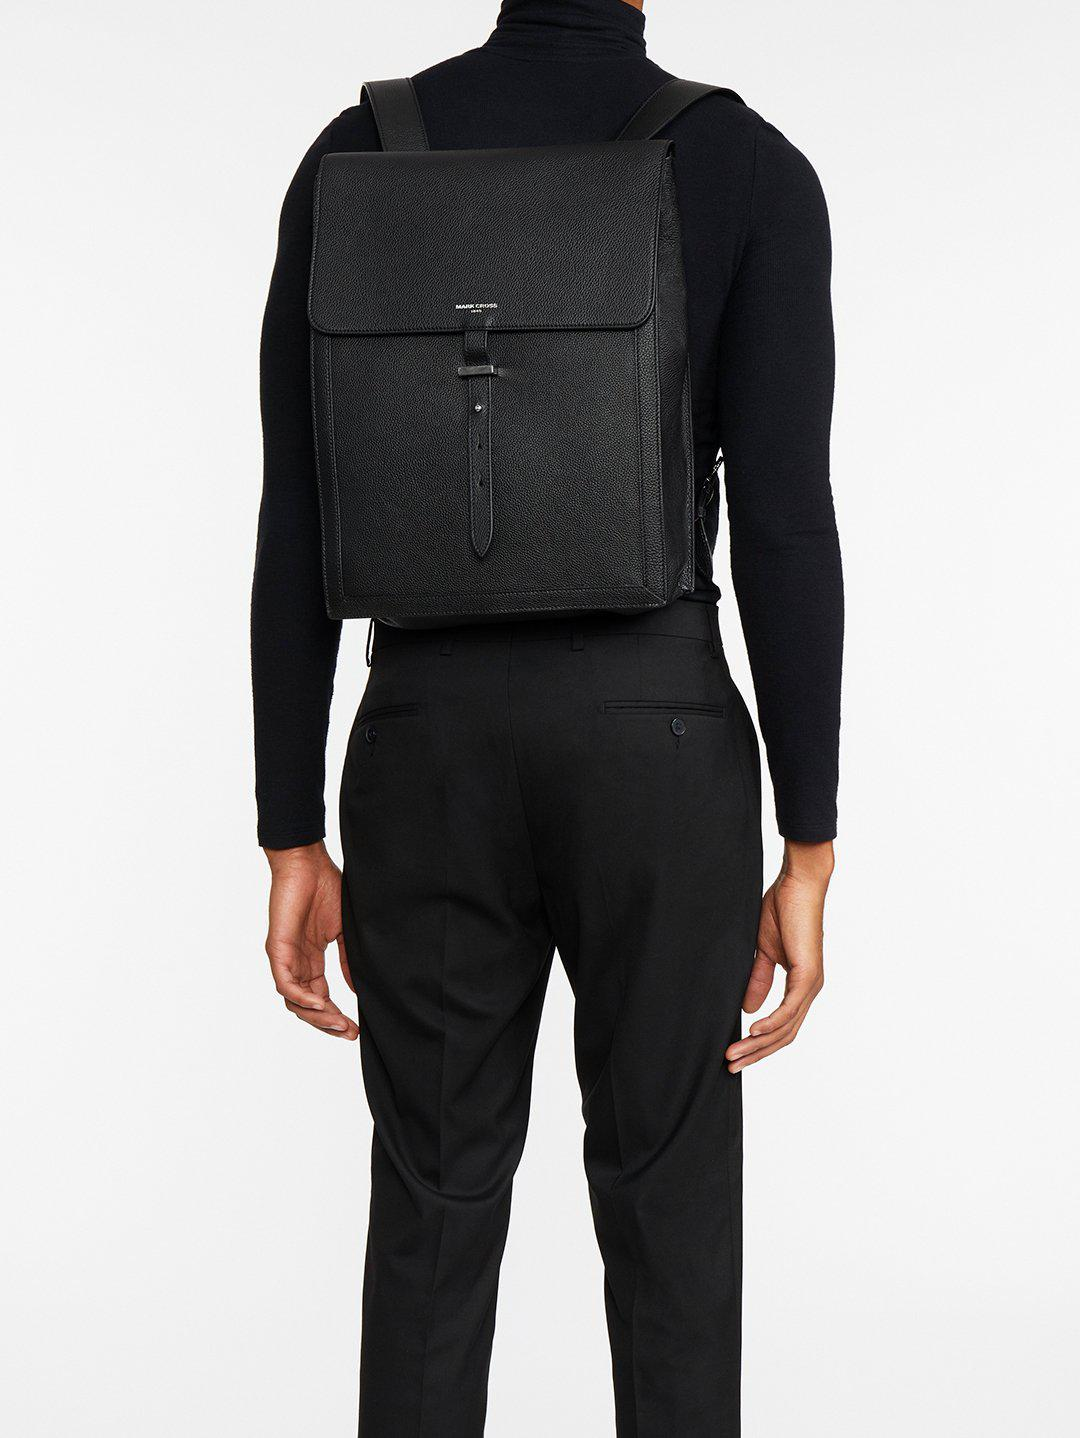 Andy Leather Backpack 7